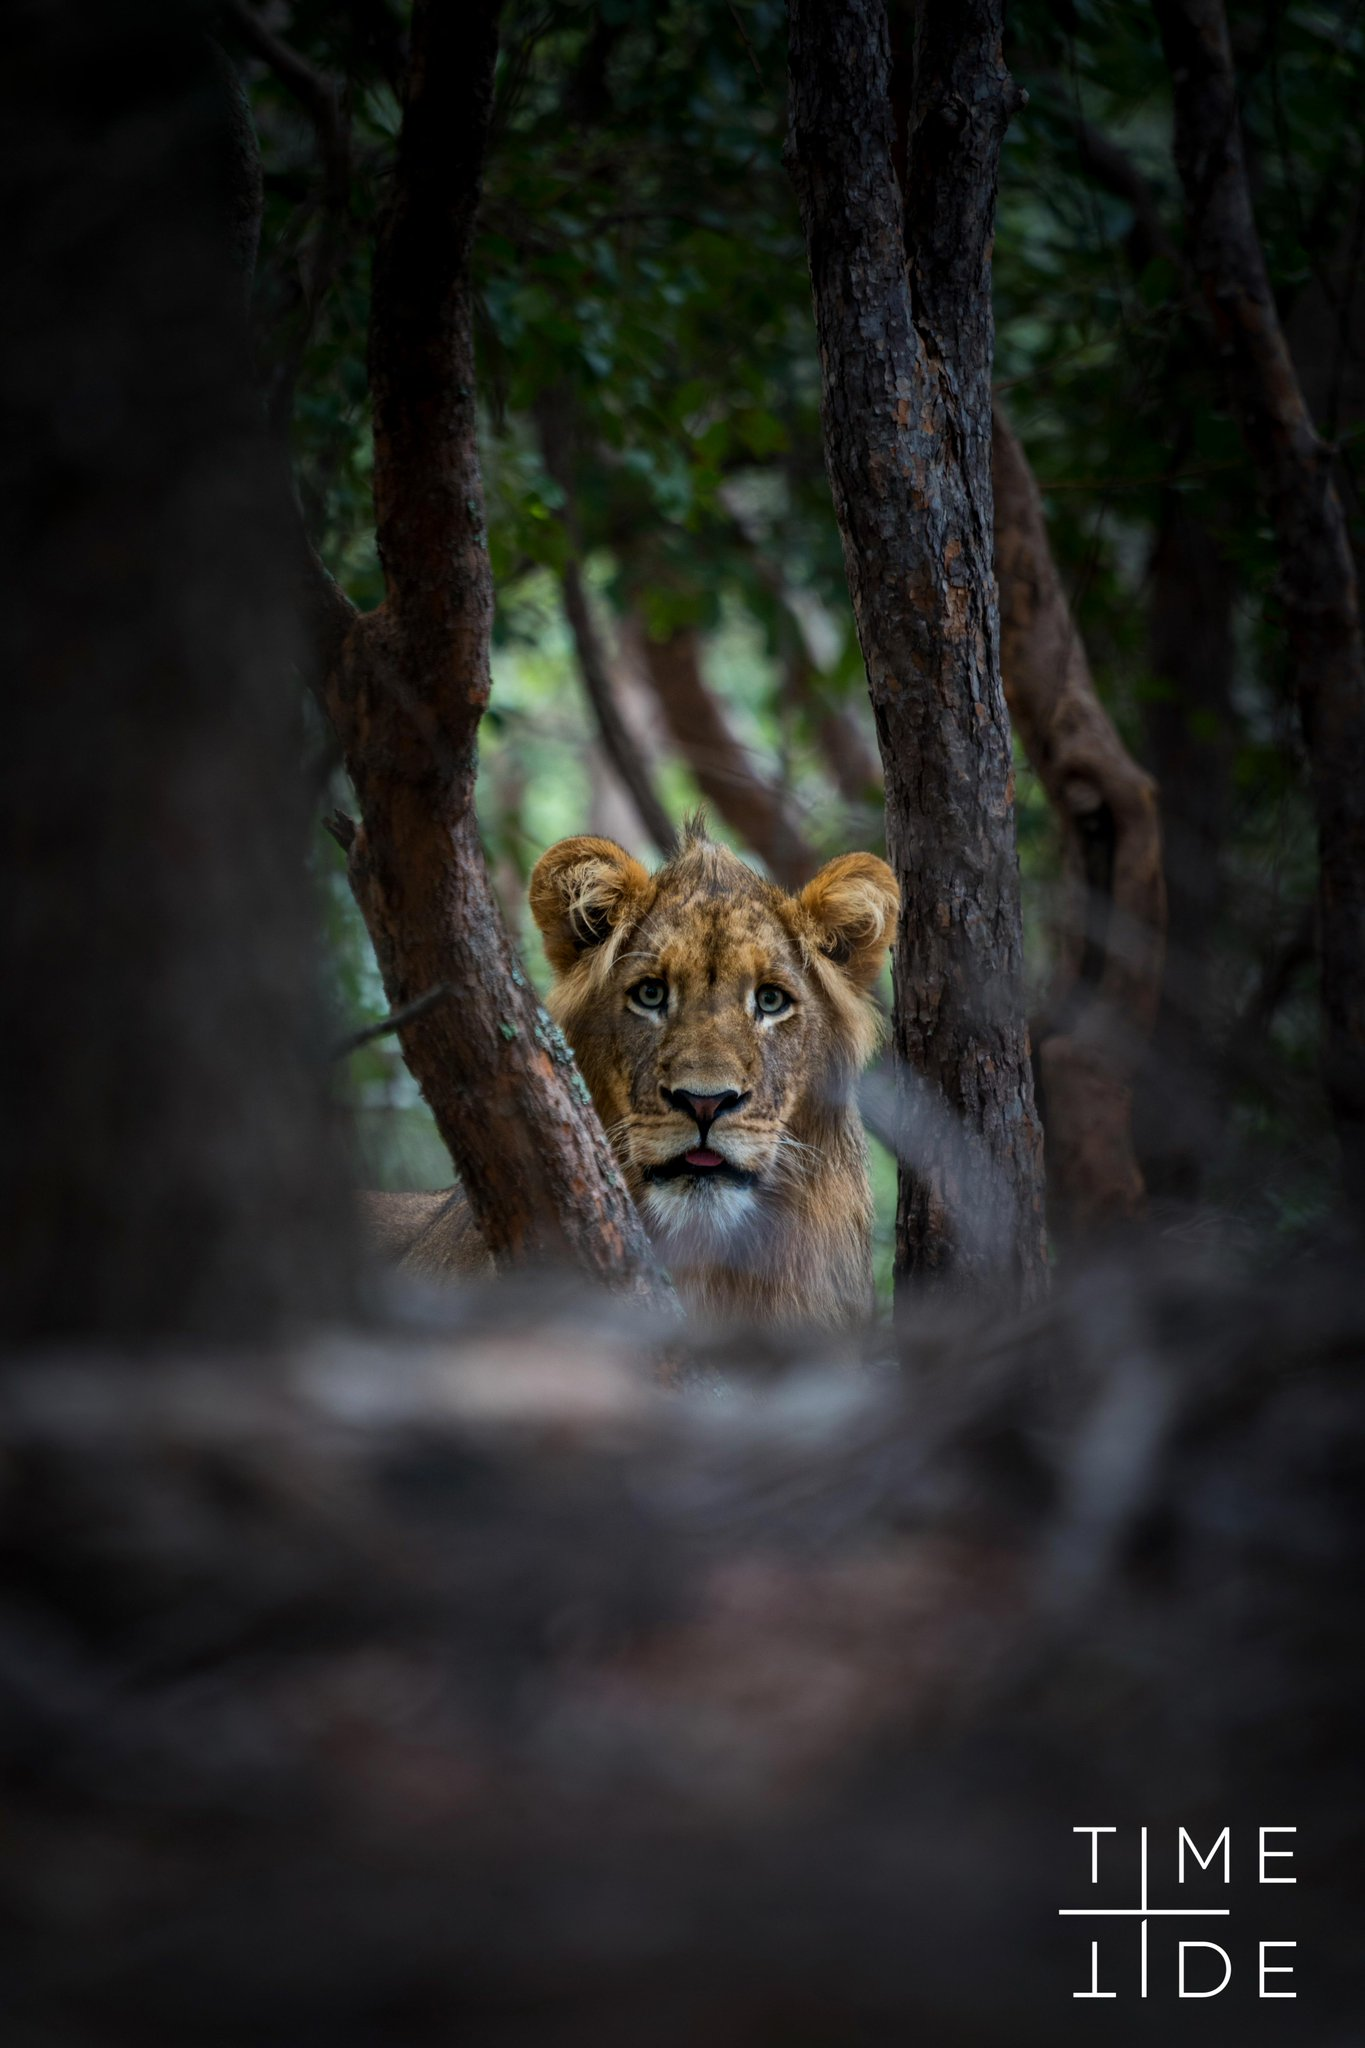 Spotted in between two villas at Time + Tide Lewanika. Our photographer, Andrew Macdonald, captured this lion peeking through the trees from about 50m away. @TimeTideAfrica https://t.co/W7H3BXOASp